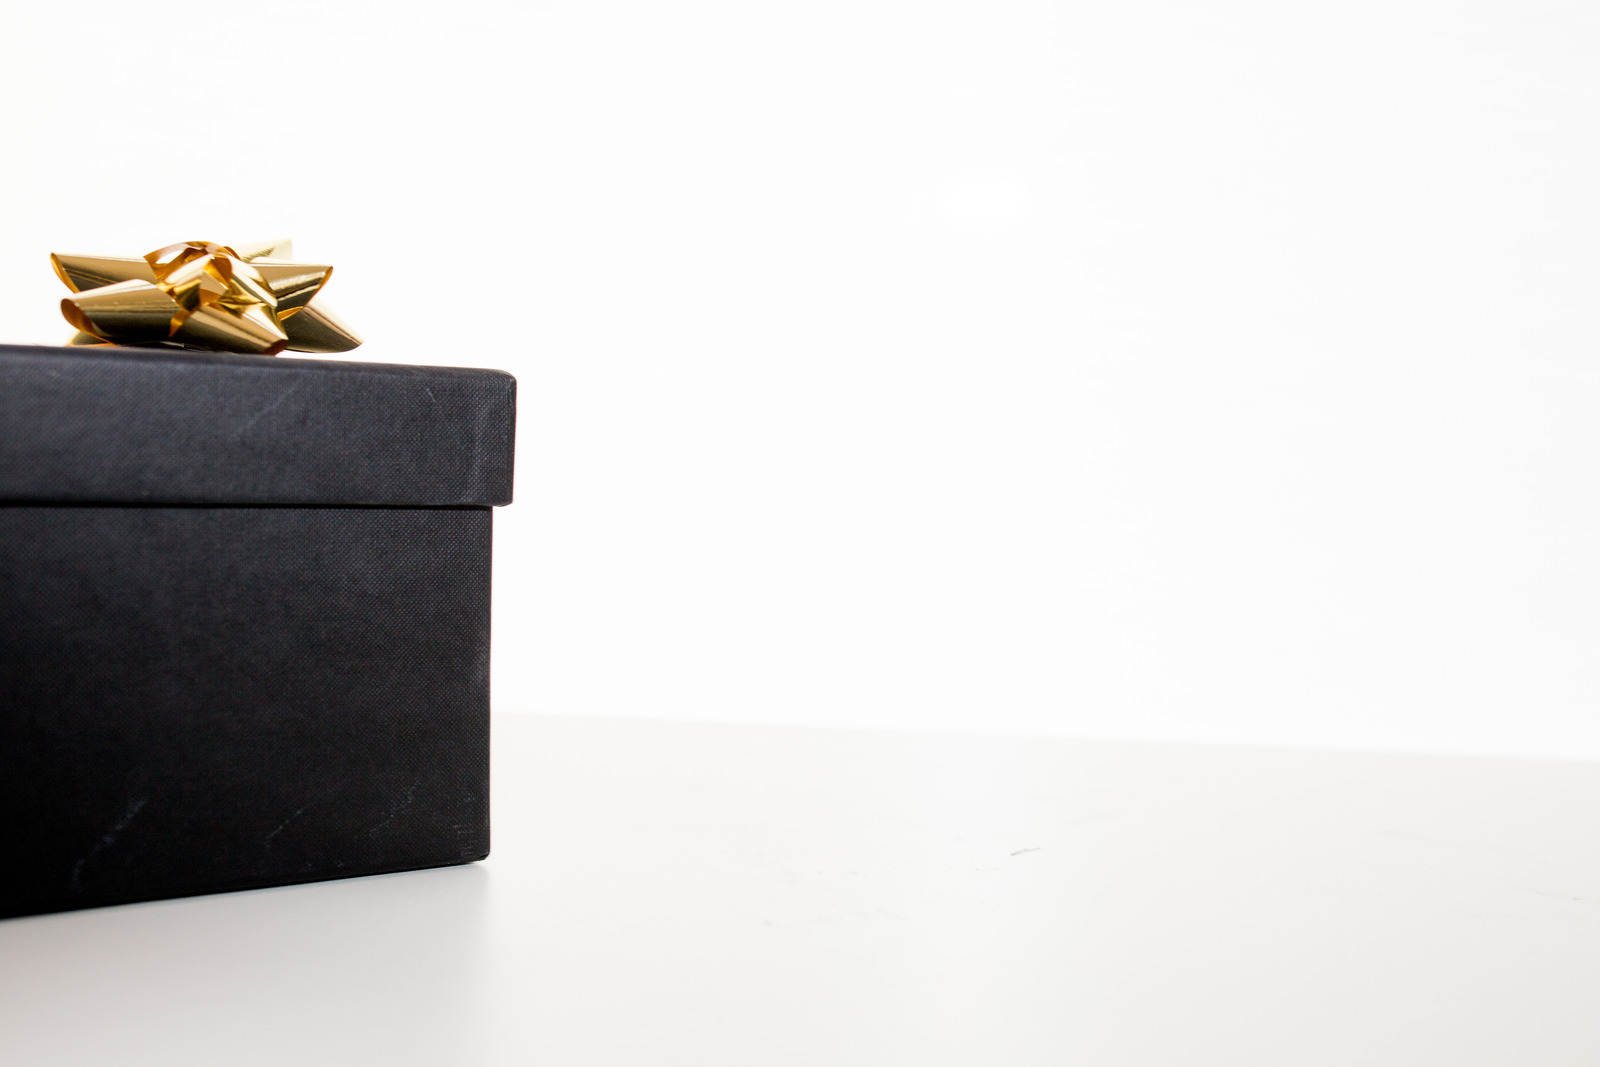 Black gift box with golden bow on the left with a plain white background